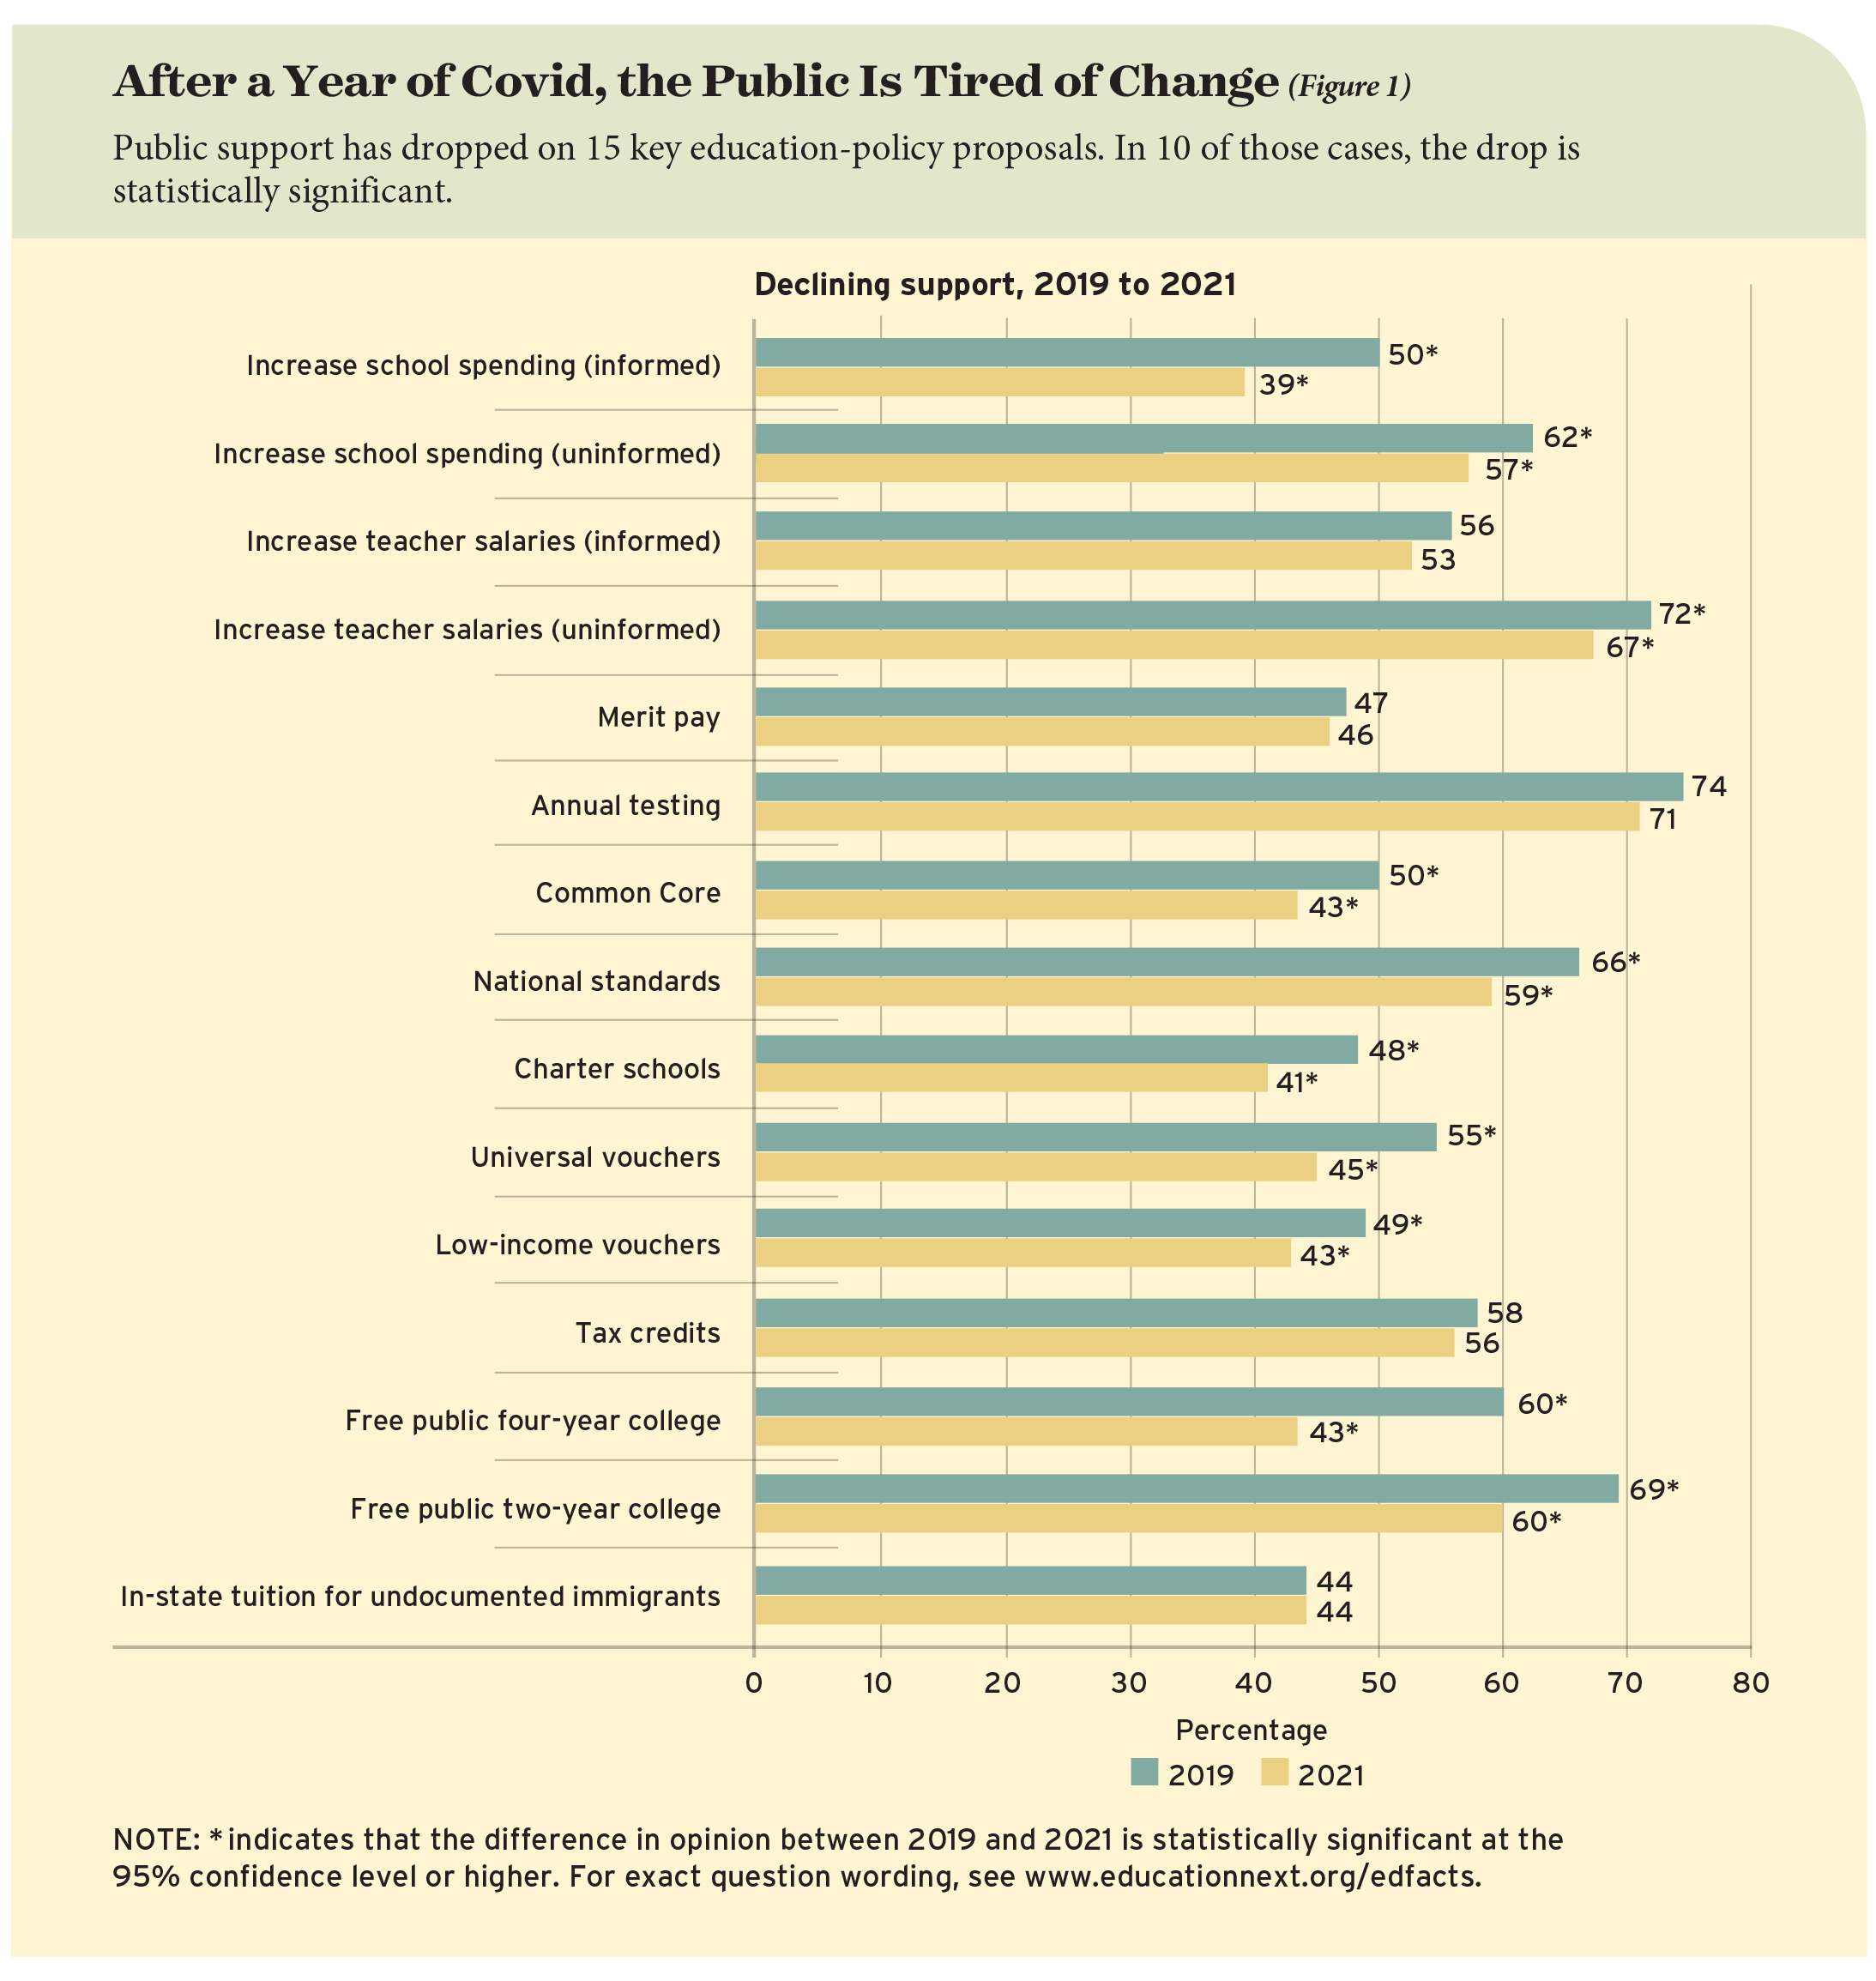 After a Year of Covid, the Public Is Tired of Change (Figure 1)